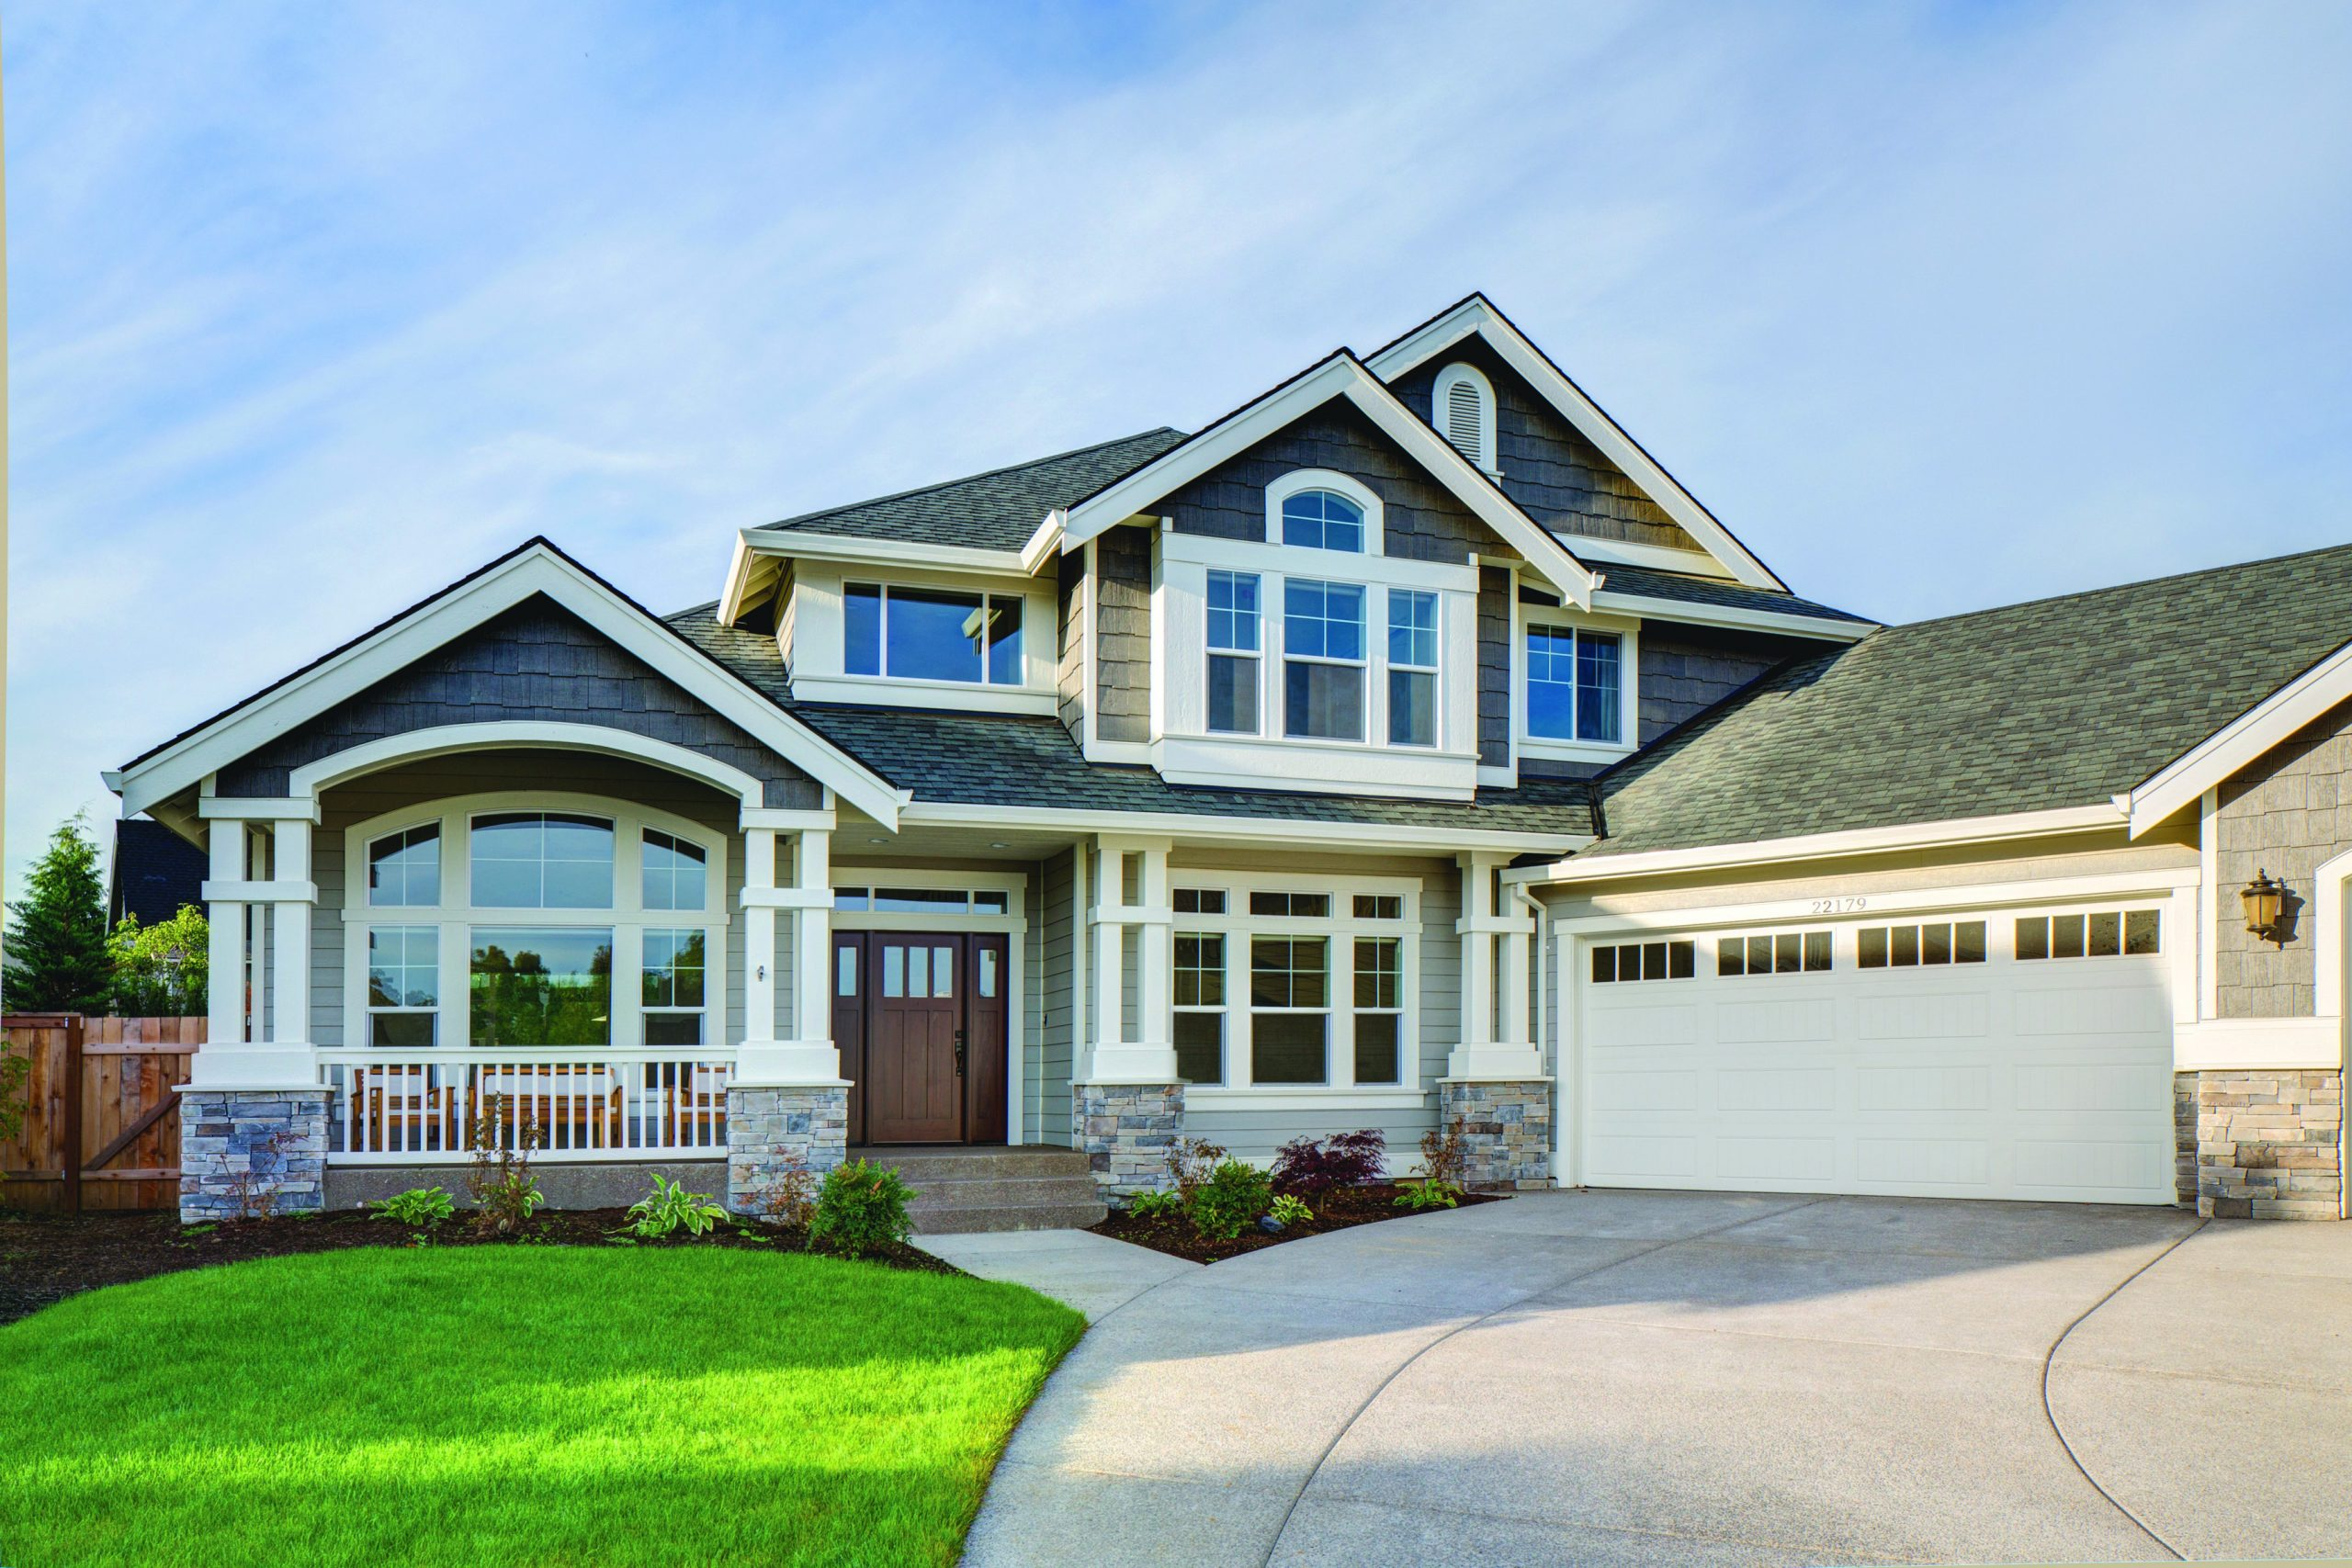 Two toned light and dark gray siding colors with white trim and columns with white railings. White garage doors. Dark brown stained front door. Light brown stone veneer.